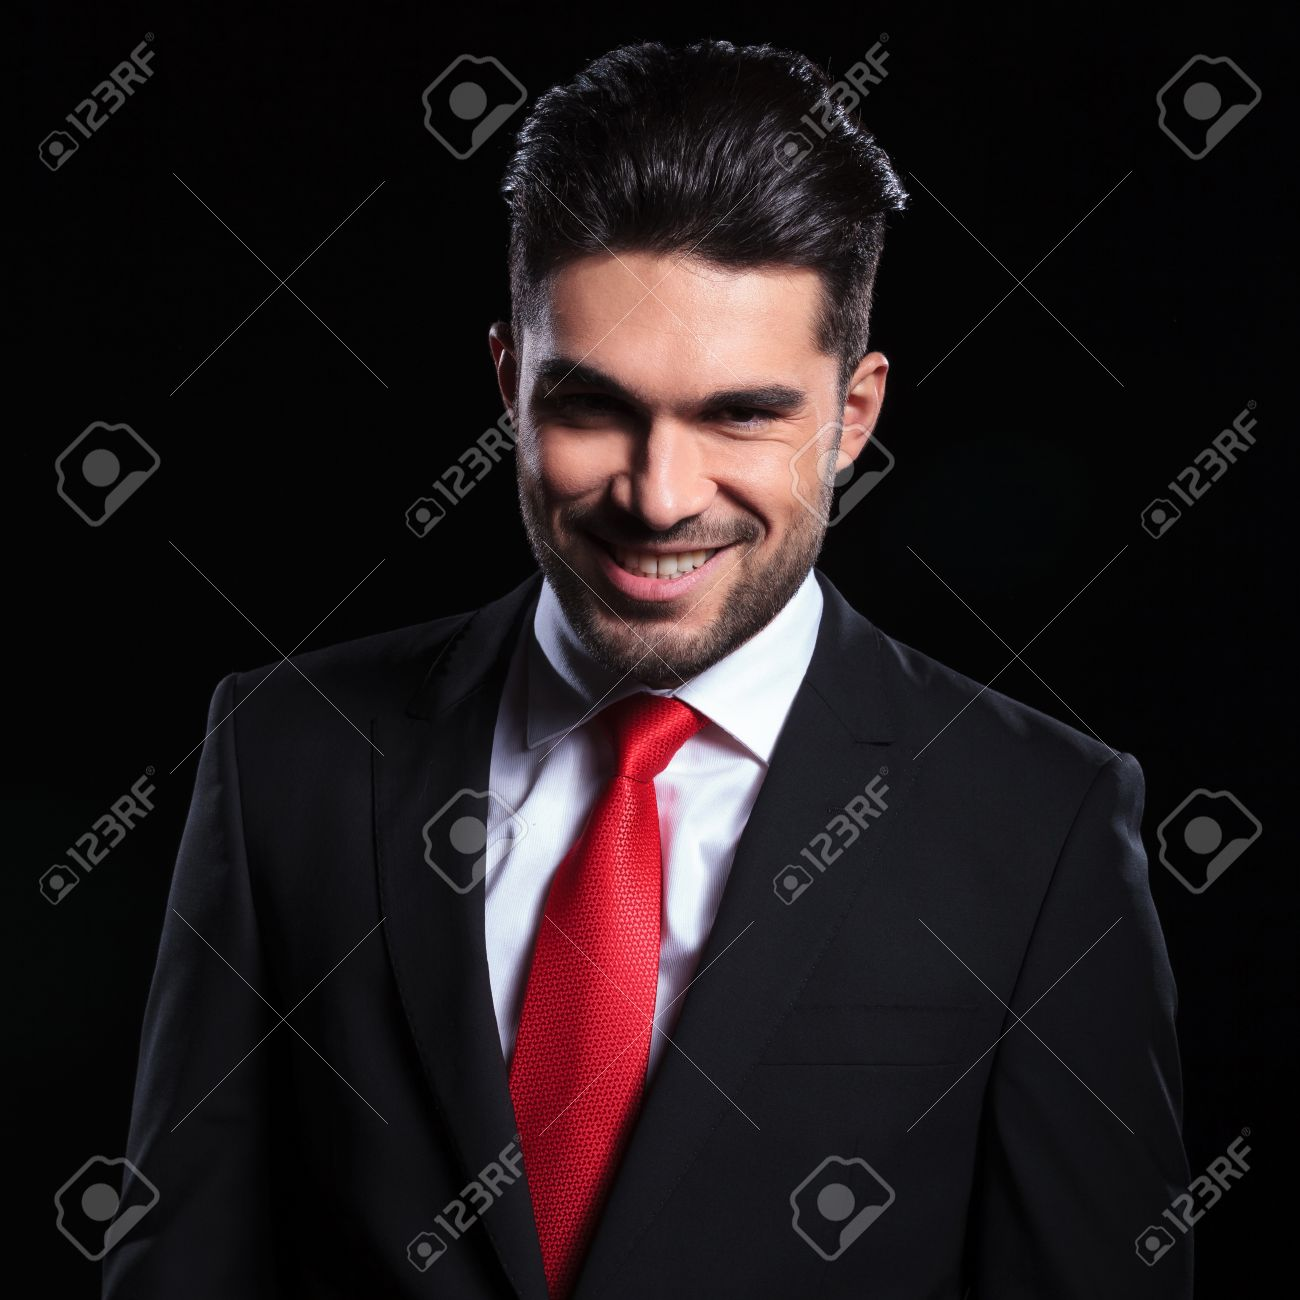 Young Business Man Looking Into The Camera With An Evil Smile Stock Photo Picture And Royalty Free Image Image 27104932 #whump aesthetic #evil smile #that scene where they're like 'the game is up' #and the other character smiles. young business man looking into the camera with an evil smile